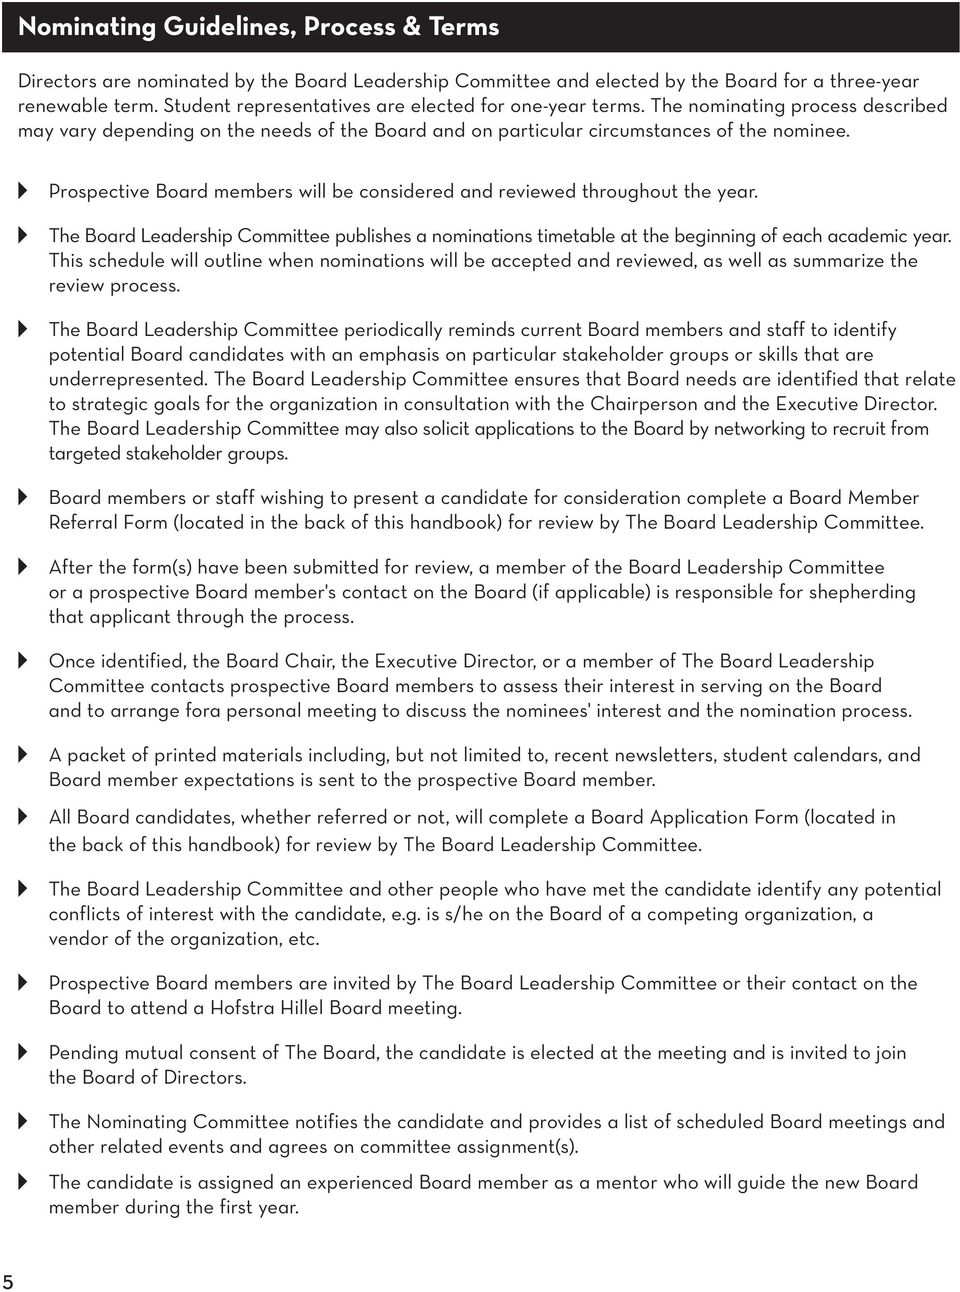 Prospective Board members will be considered and reviewed throughout the year. The Board Leadership Committee publishes a nominations timetable at the beginning of each academic year.